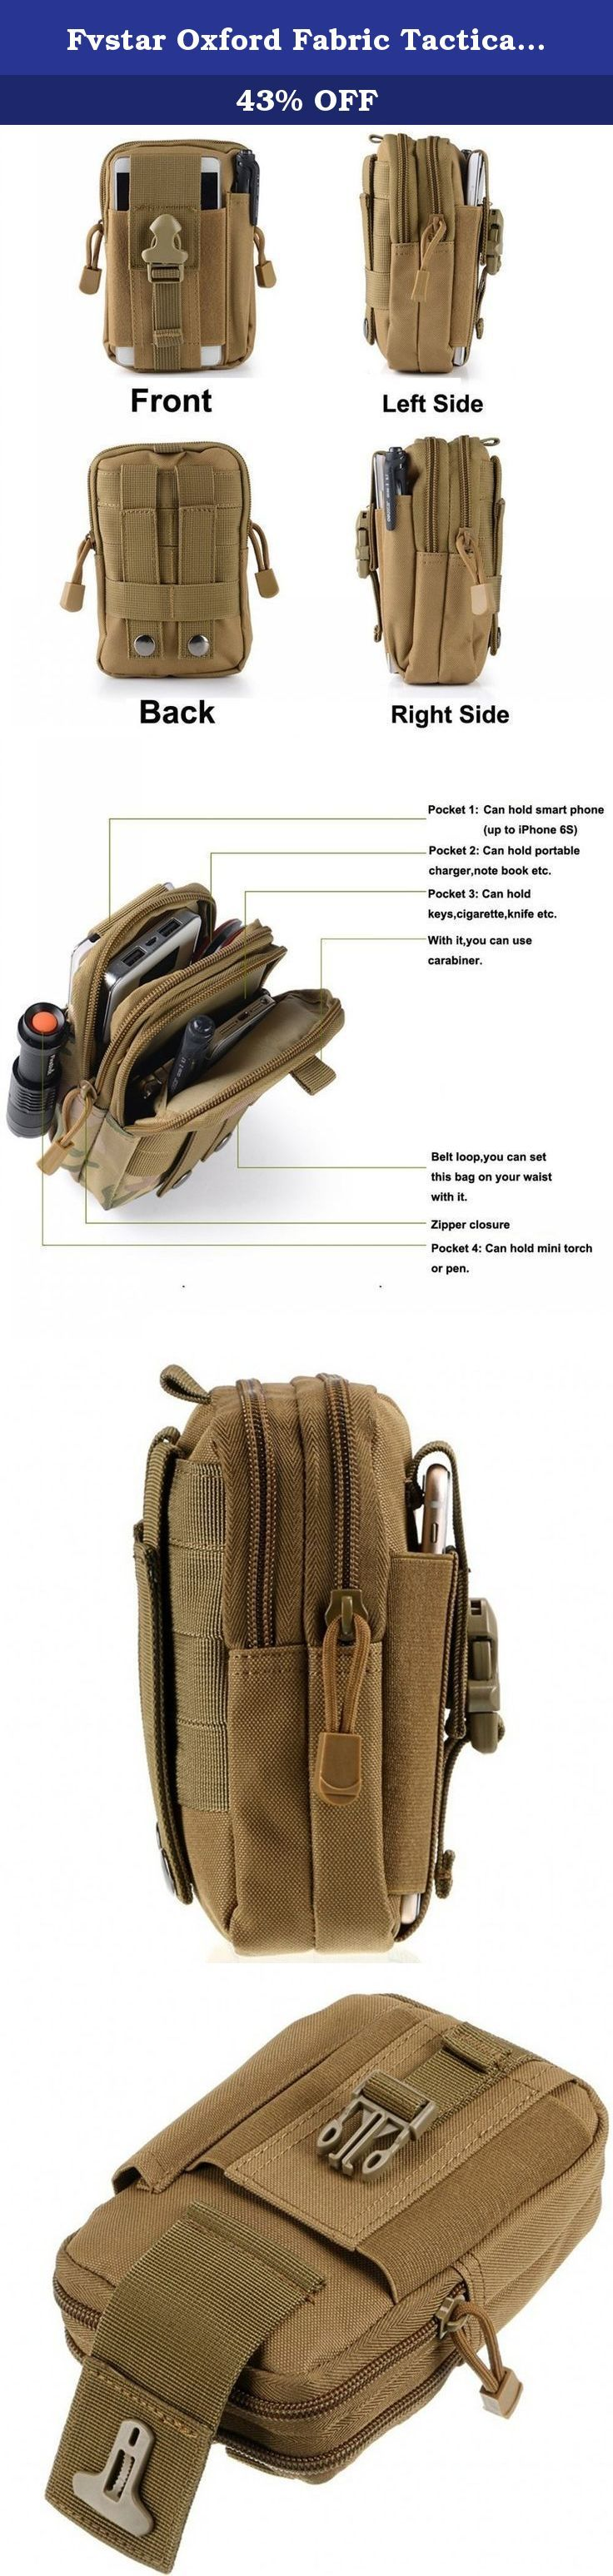 Fvstar Oxford Fabric Tactical Molle Pouch EDC Utility Gadget Belt Waist Bag Outdoor Sports Bag(Pen and Phone not included) (Khaki, 12.0cm 6.0cm 17.5cm). Feature: Wear-resisting, lightweight; It's a Great organizer for smart phone, Camera, key, wallet, pen, knife, notebook, small tool etc small accessories; Durable material keeps your cellphone and other electronic devices safe and protected; Designed as a tactical molle bag that can be used as a small tactical EDC pouch,waist bag, gadget...